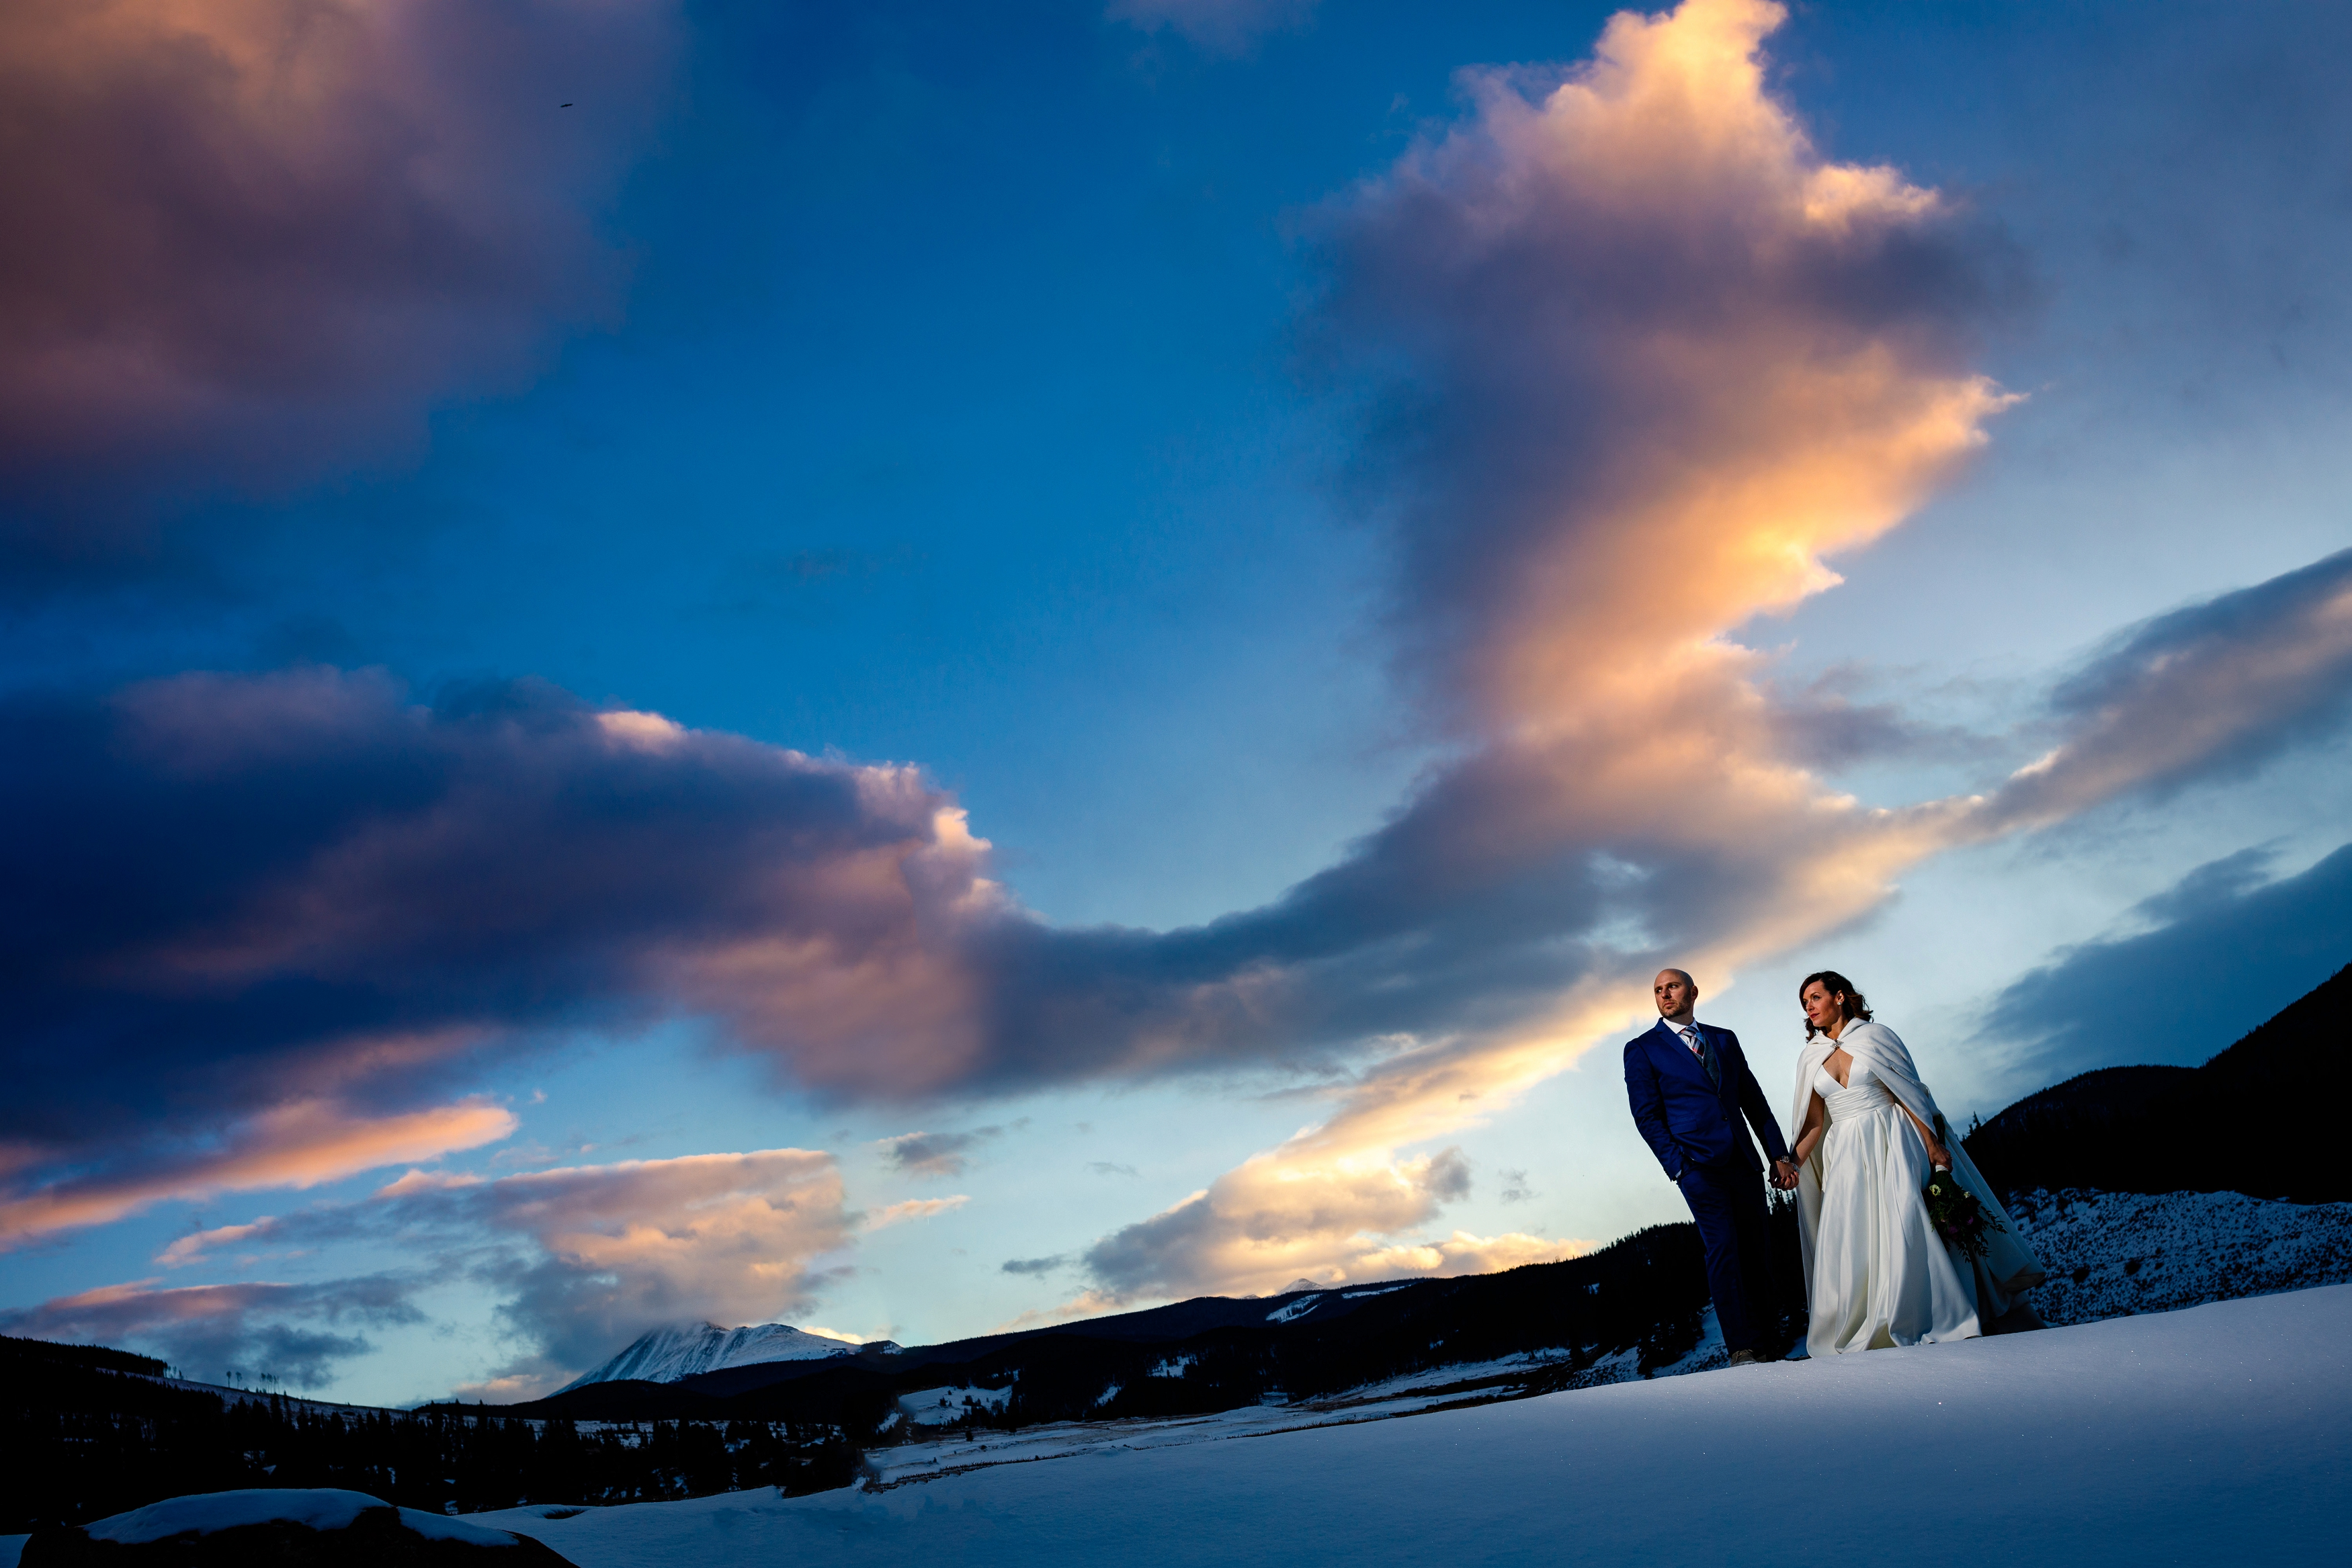 A beautiful winter sunset wedding portrait for Rachel & Scott at Keystone Ranch.